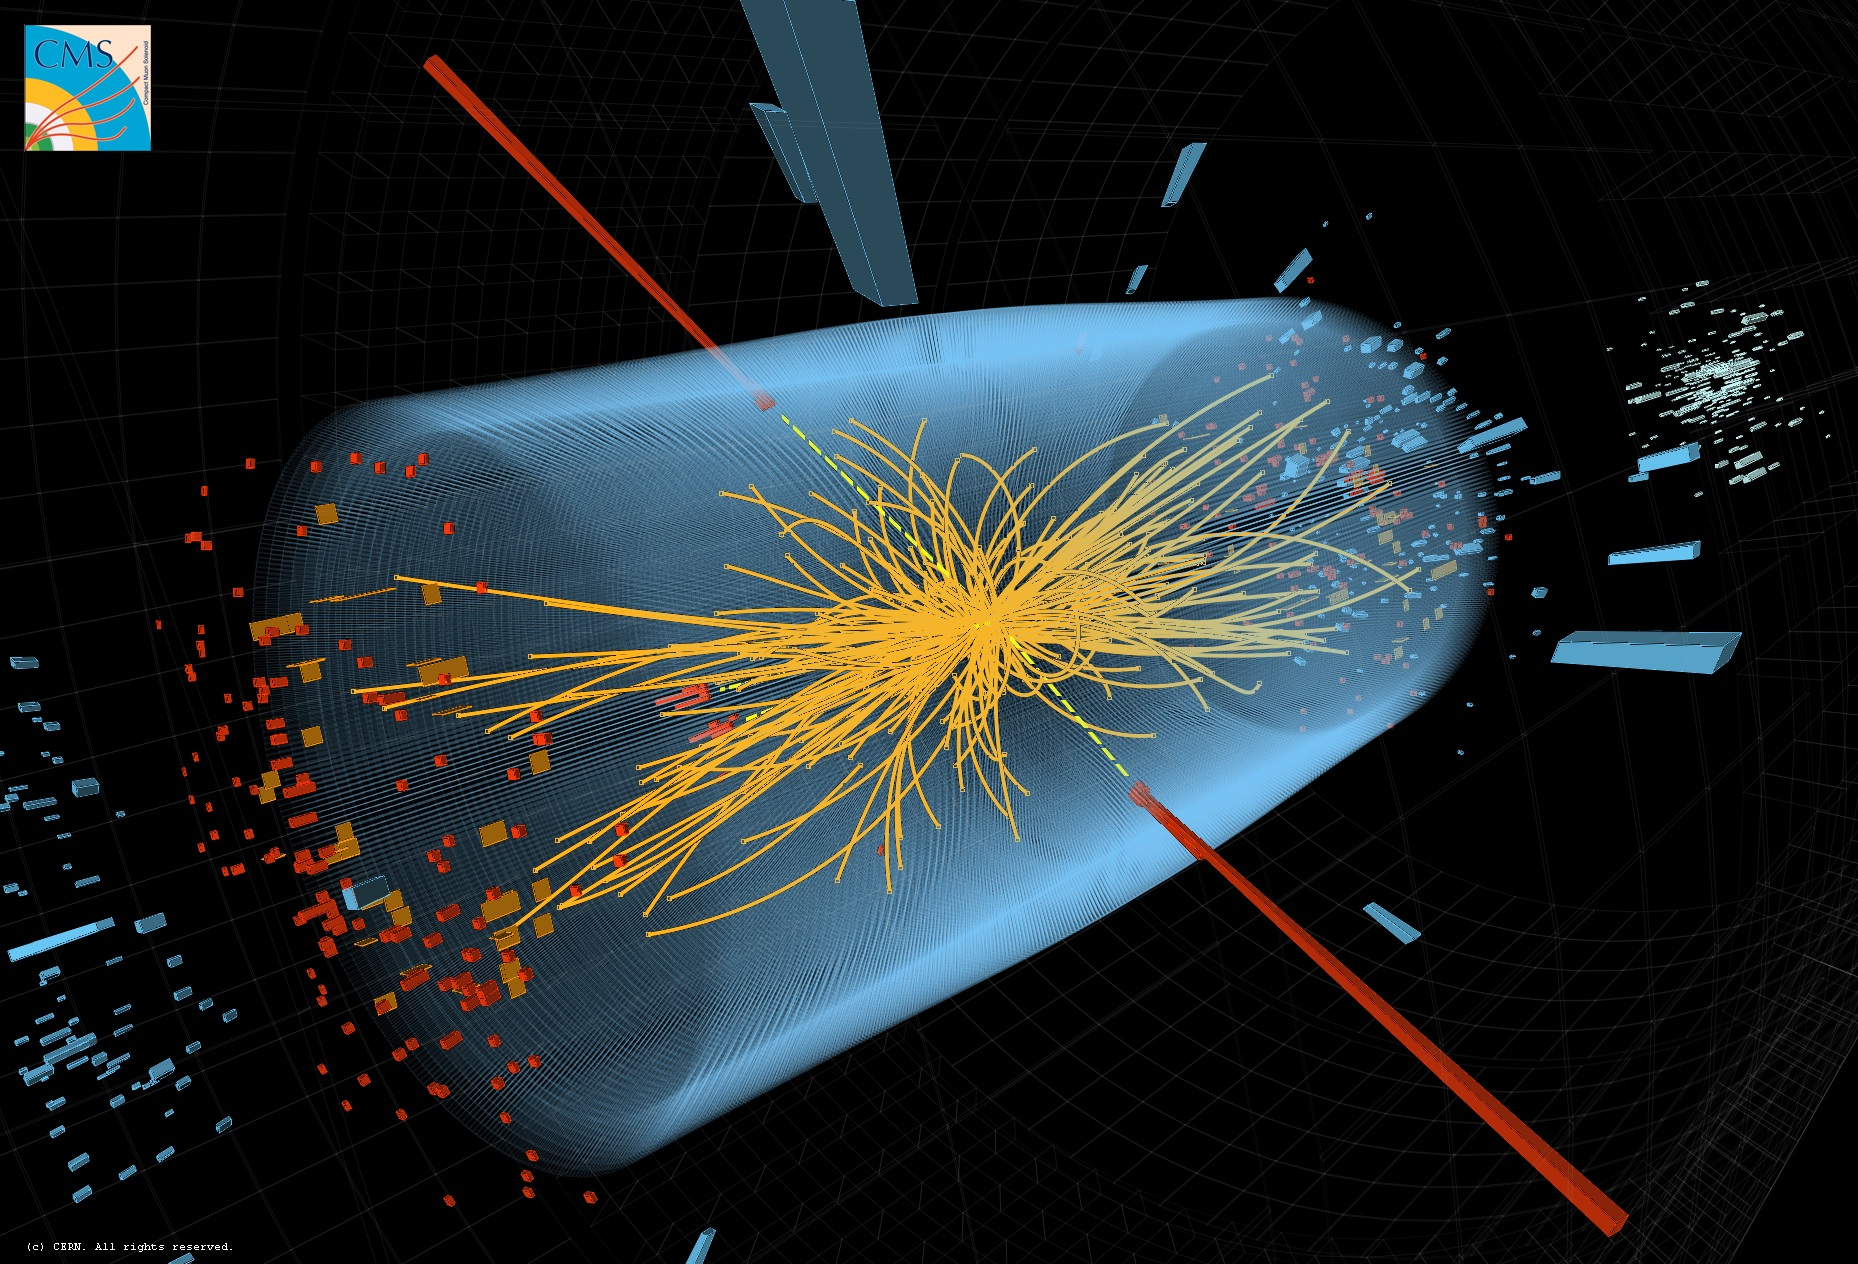 Long-Sought 'God Particle' Cornered, Scientists Say